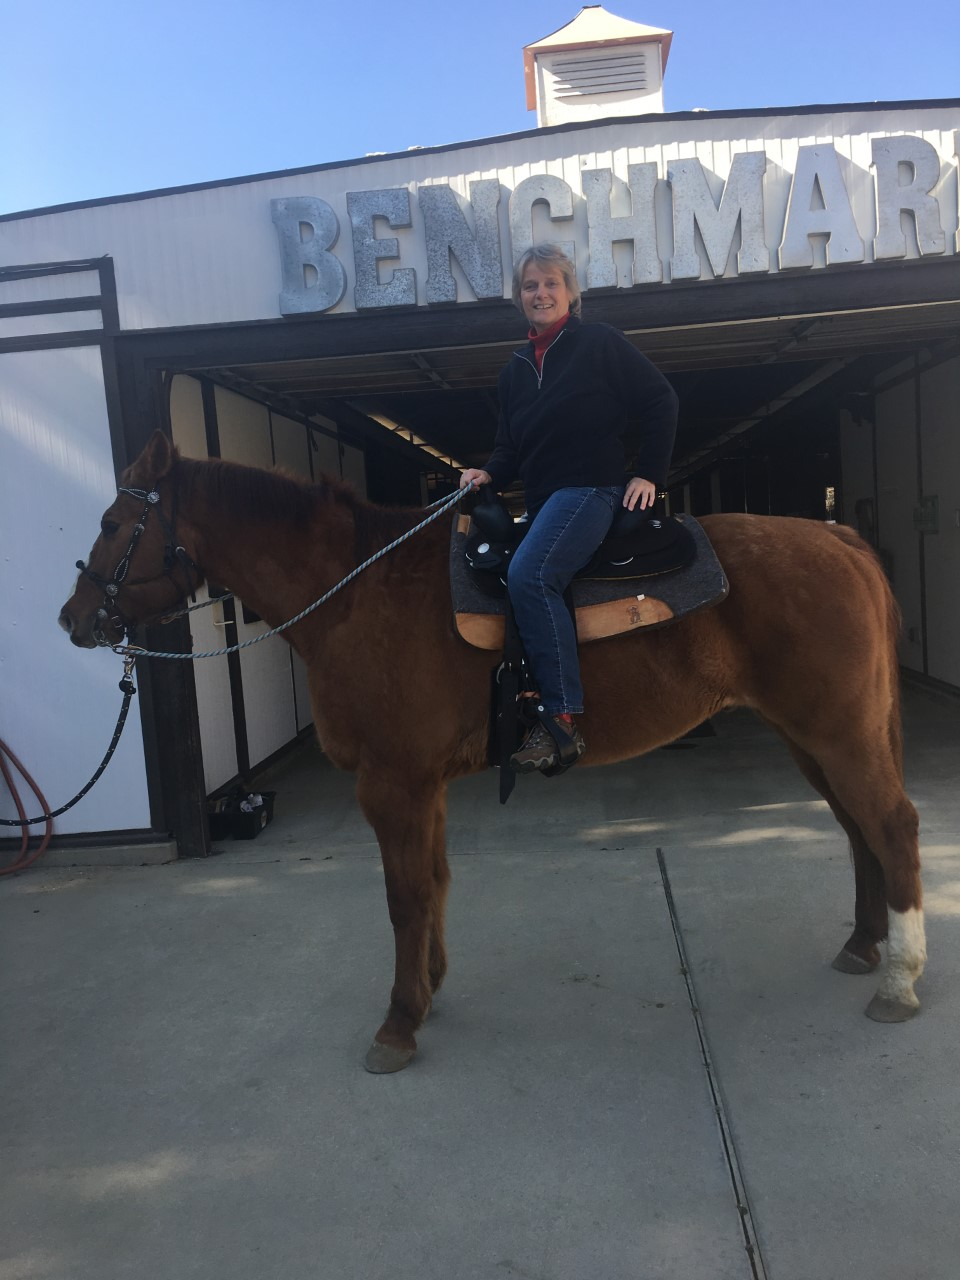 Colleen Callahan sitting on a brown horse.